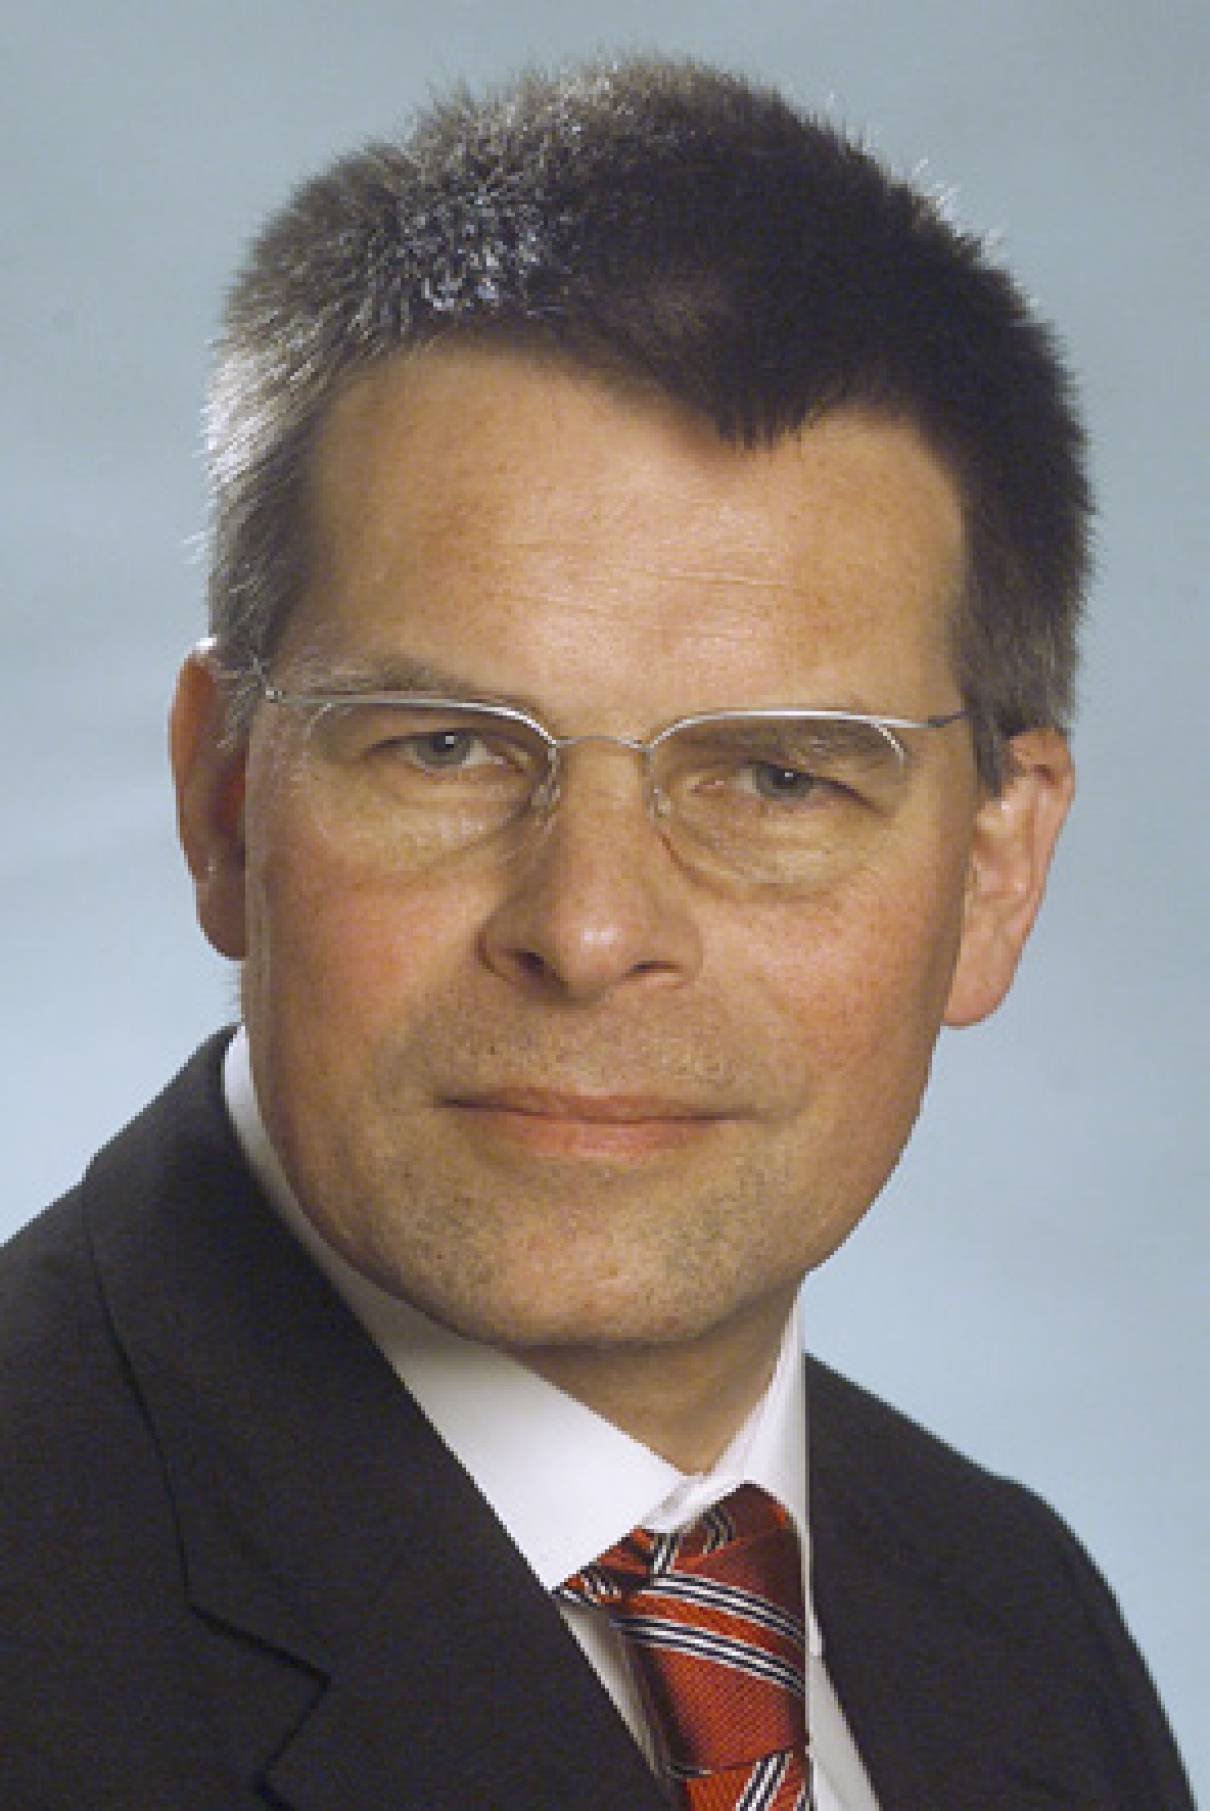 Dr. Hans-Dieter Schat (Fraunhofer ISI): Integral office design is a requirement for excellent Management